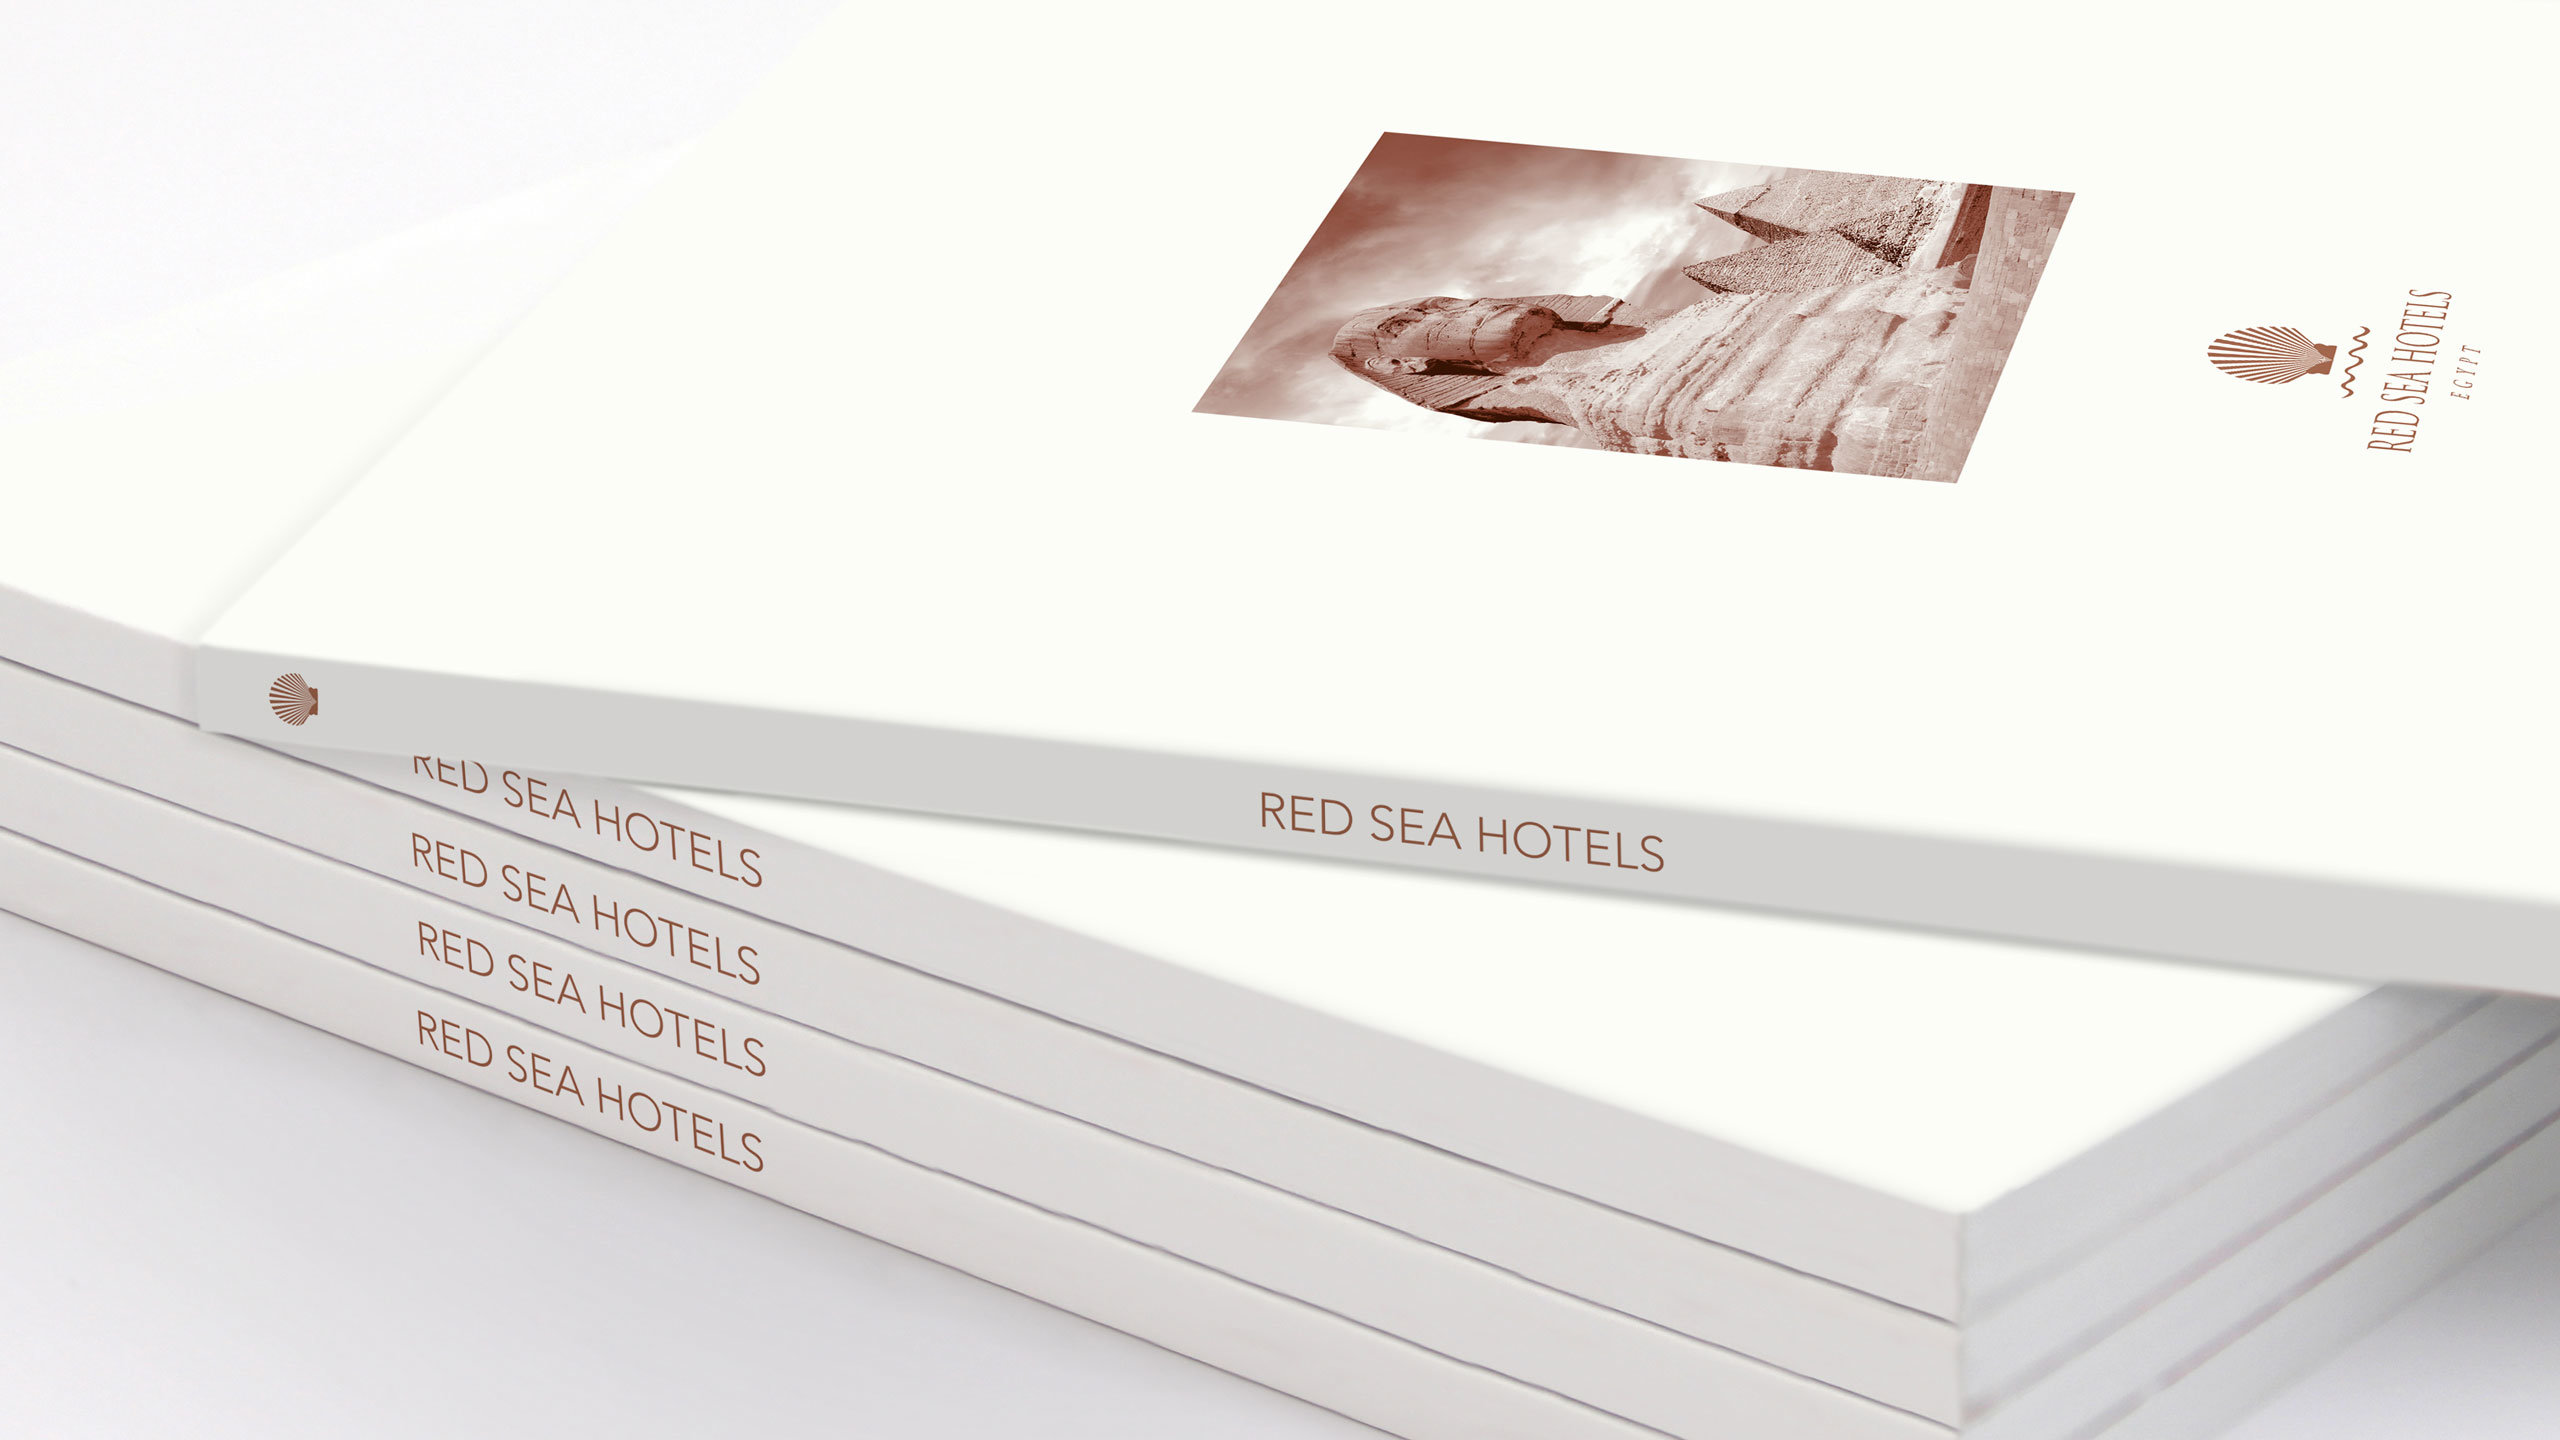 luxury hotels brochure design brochure stack red sea hotels